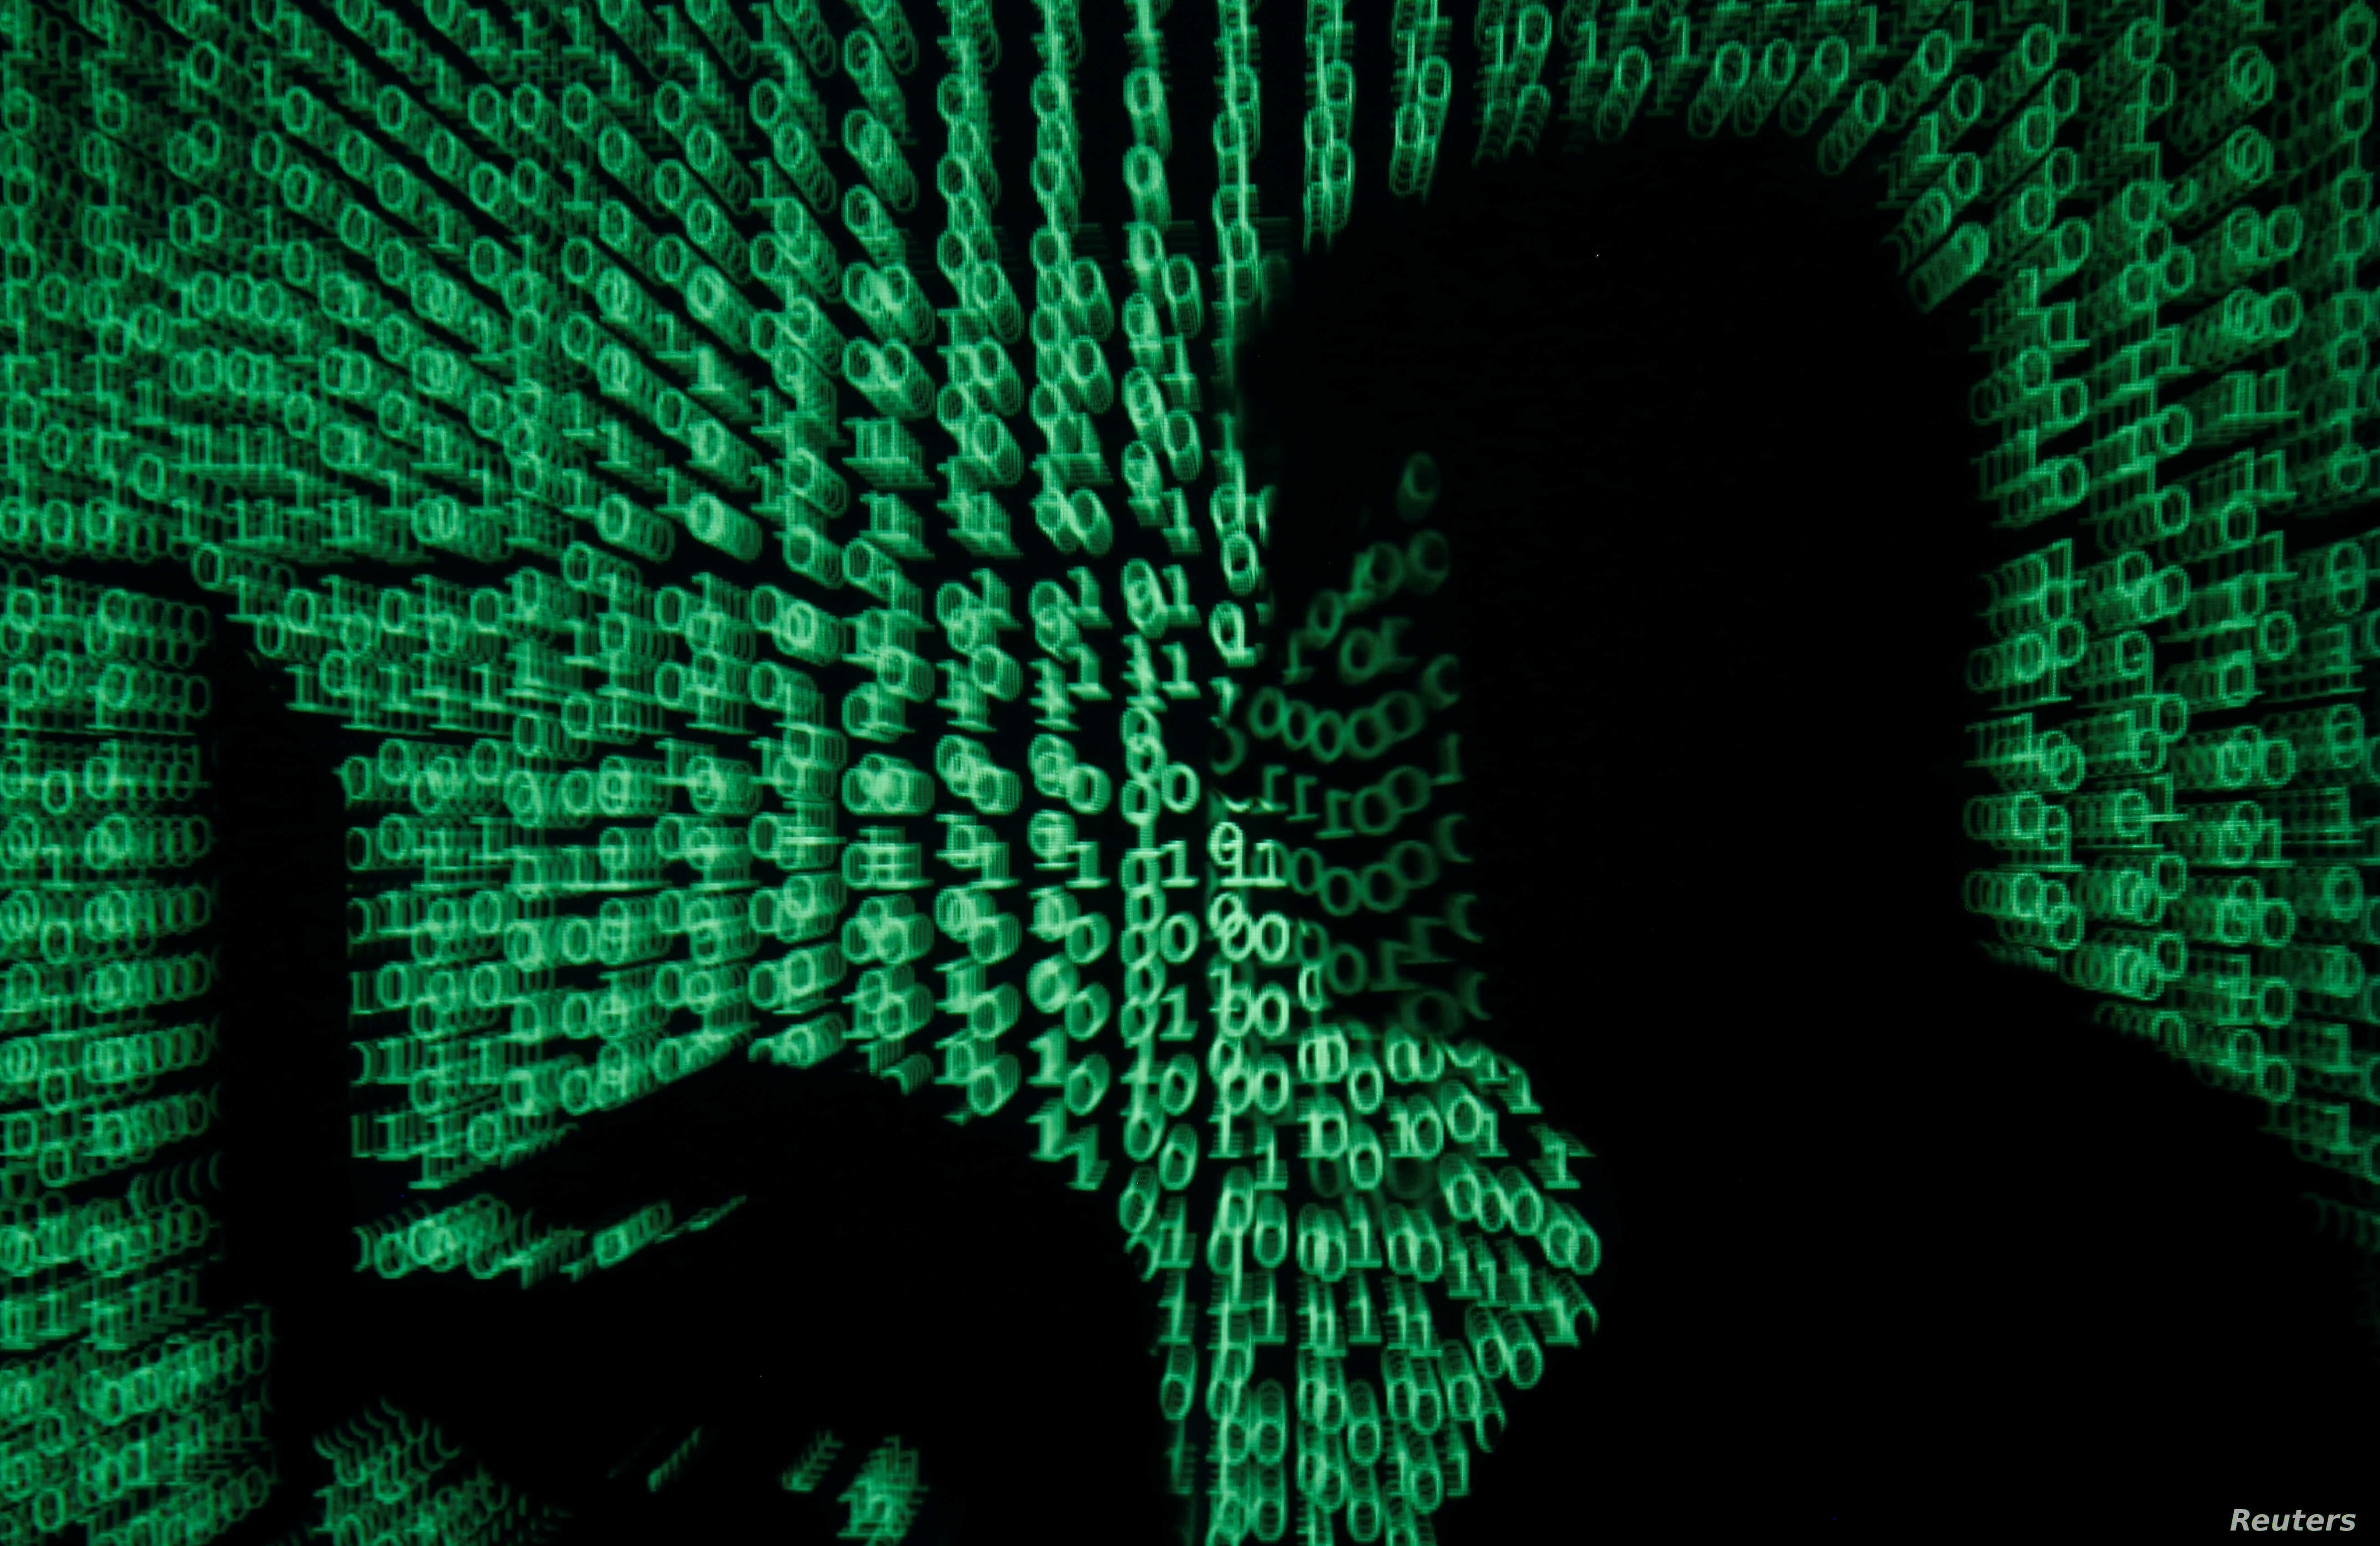 Germany Investigating Whether Turkey Supplied With Spyware